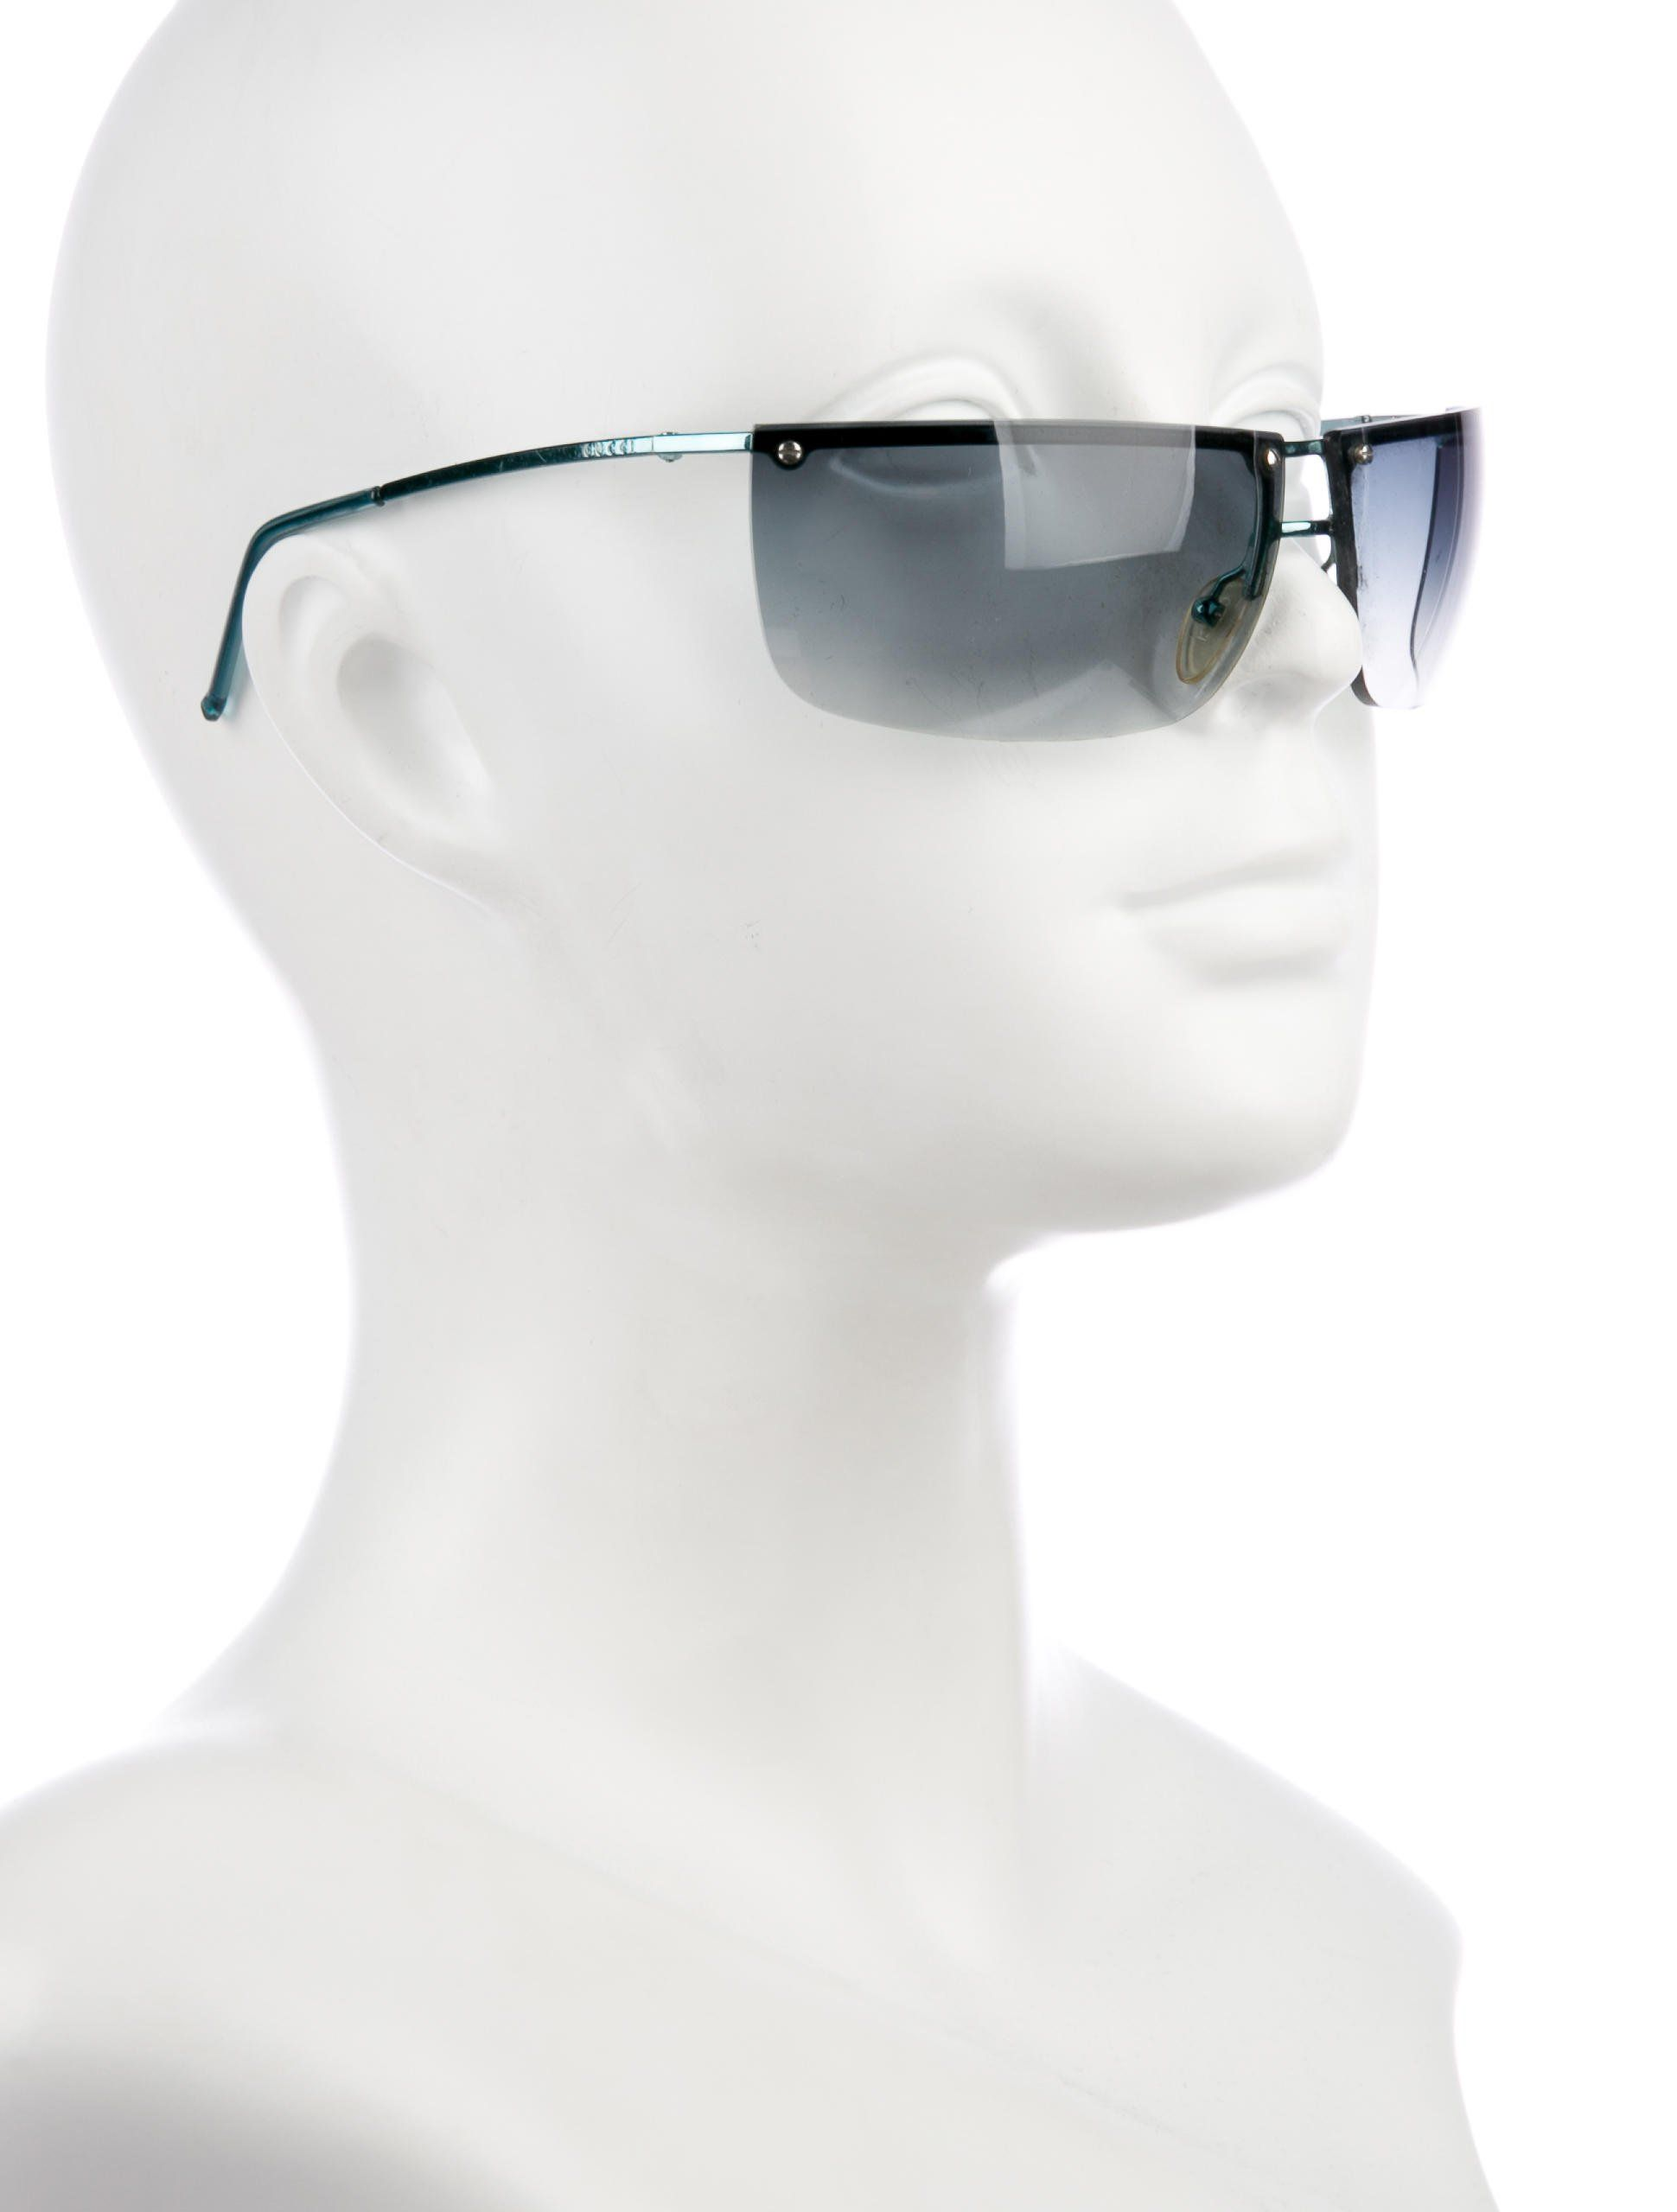 f78c63db2ec Aqua blue metal Gucci rimless sunglasses featuring etched logos at temples  and tonal gradient lenses.